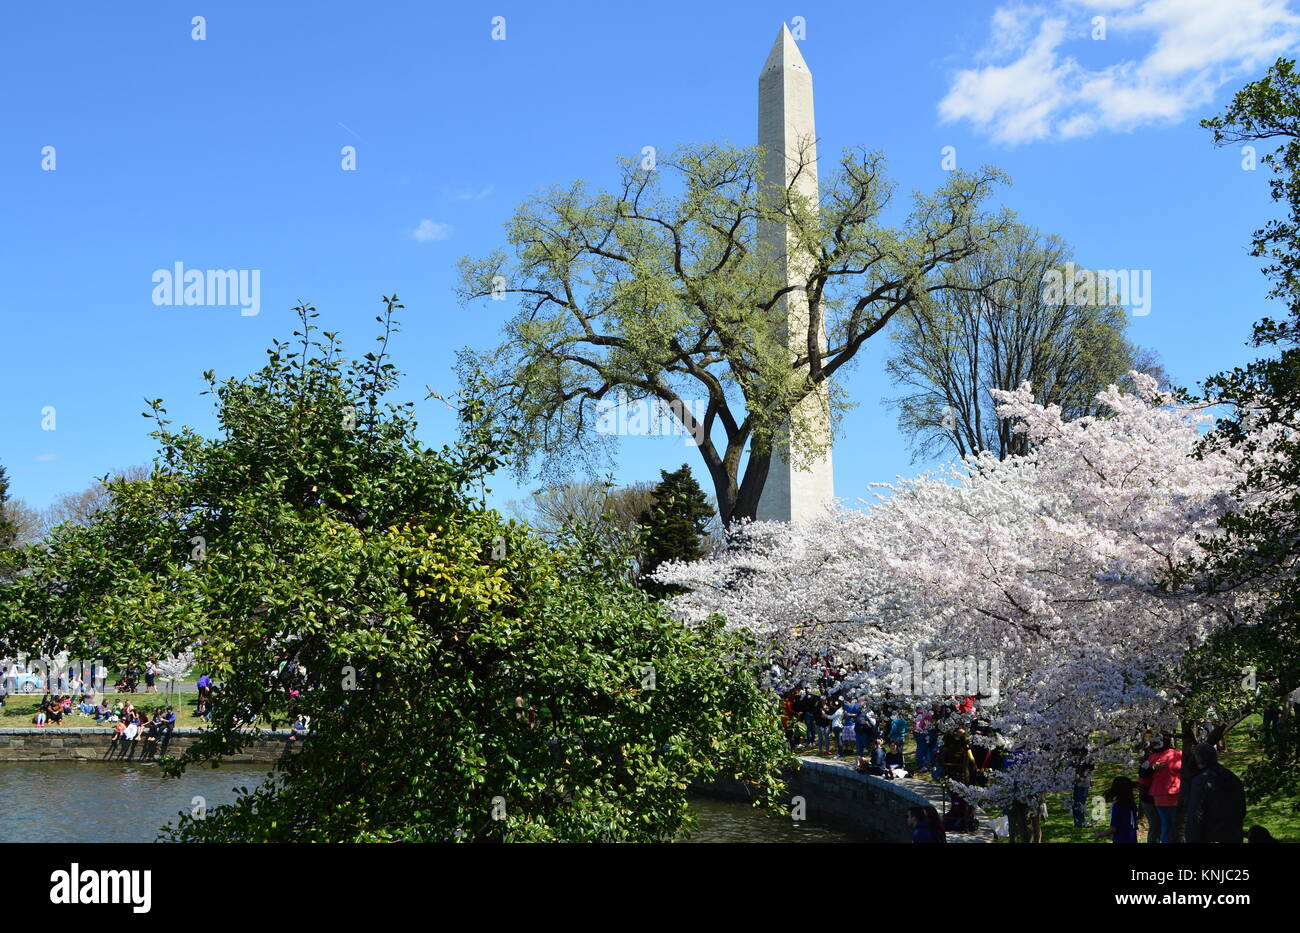 Washignton DC, Columbia, EE.UU. - 11 de abril de 2015: Los cerezos en flor y el Washington Monument Imagen De Stock